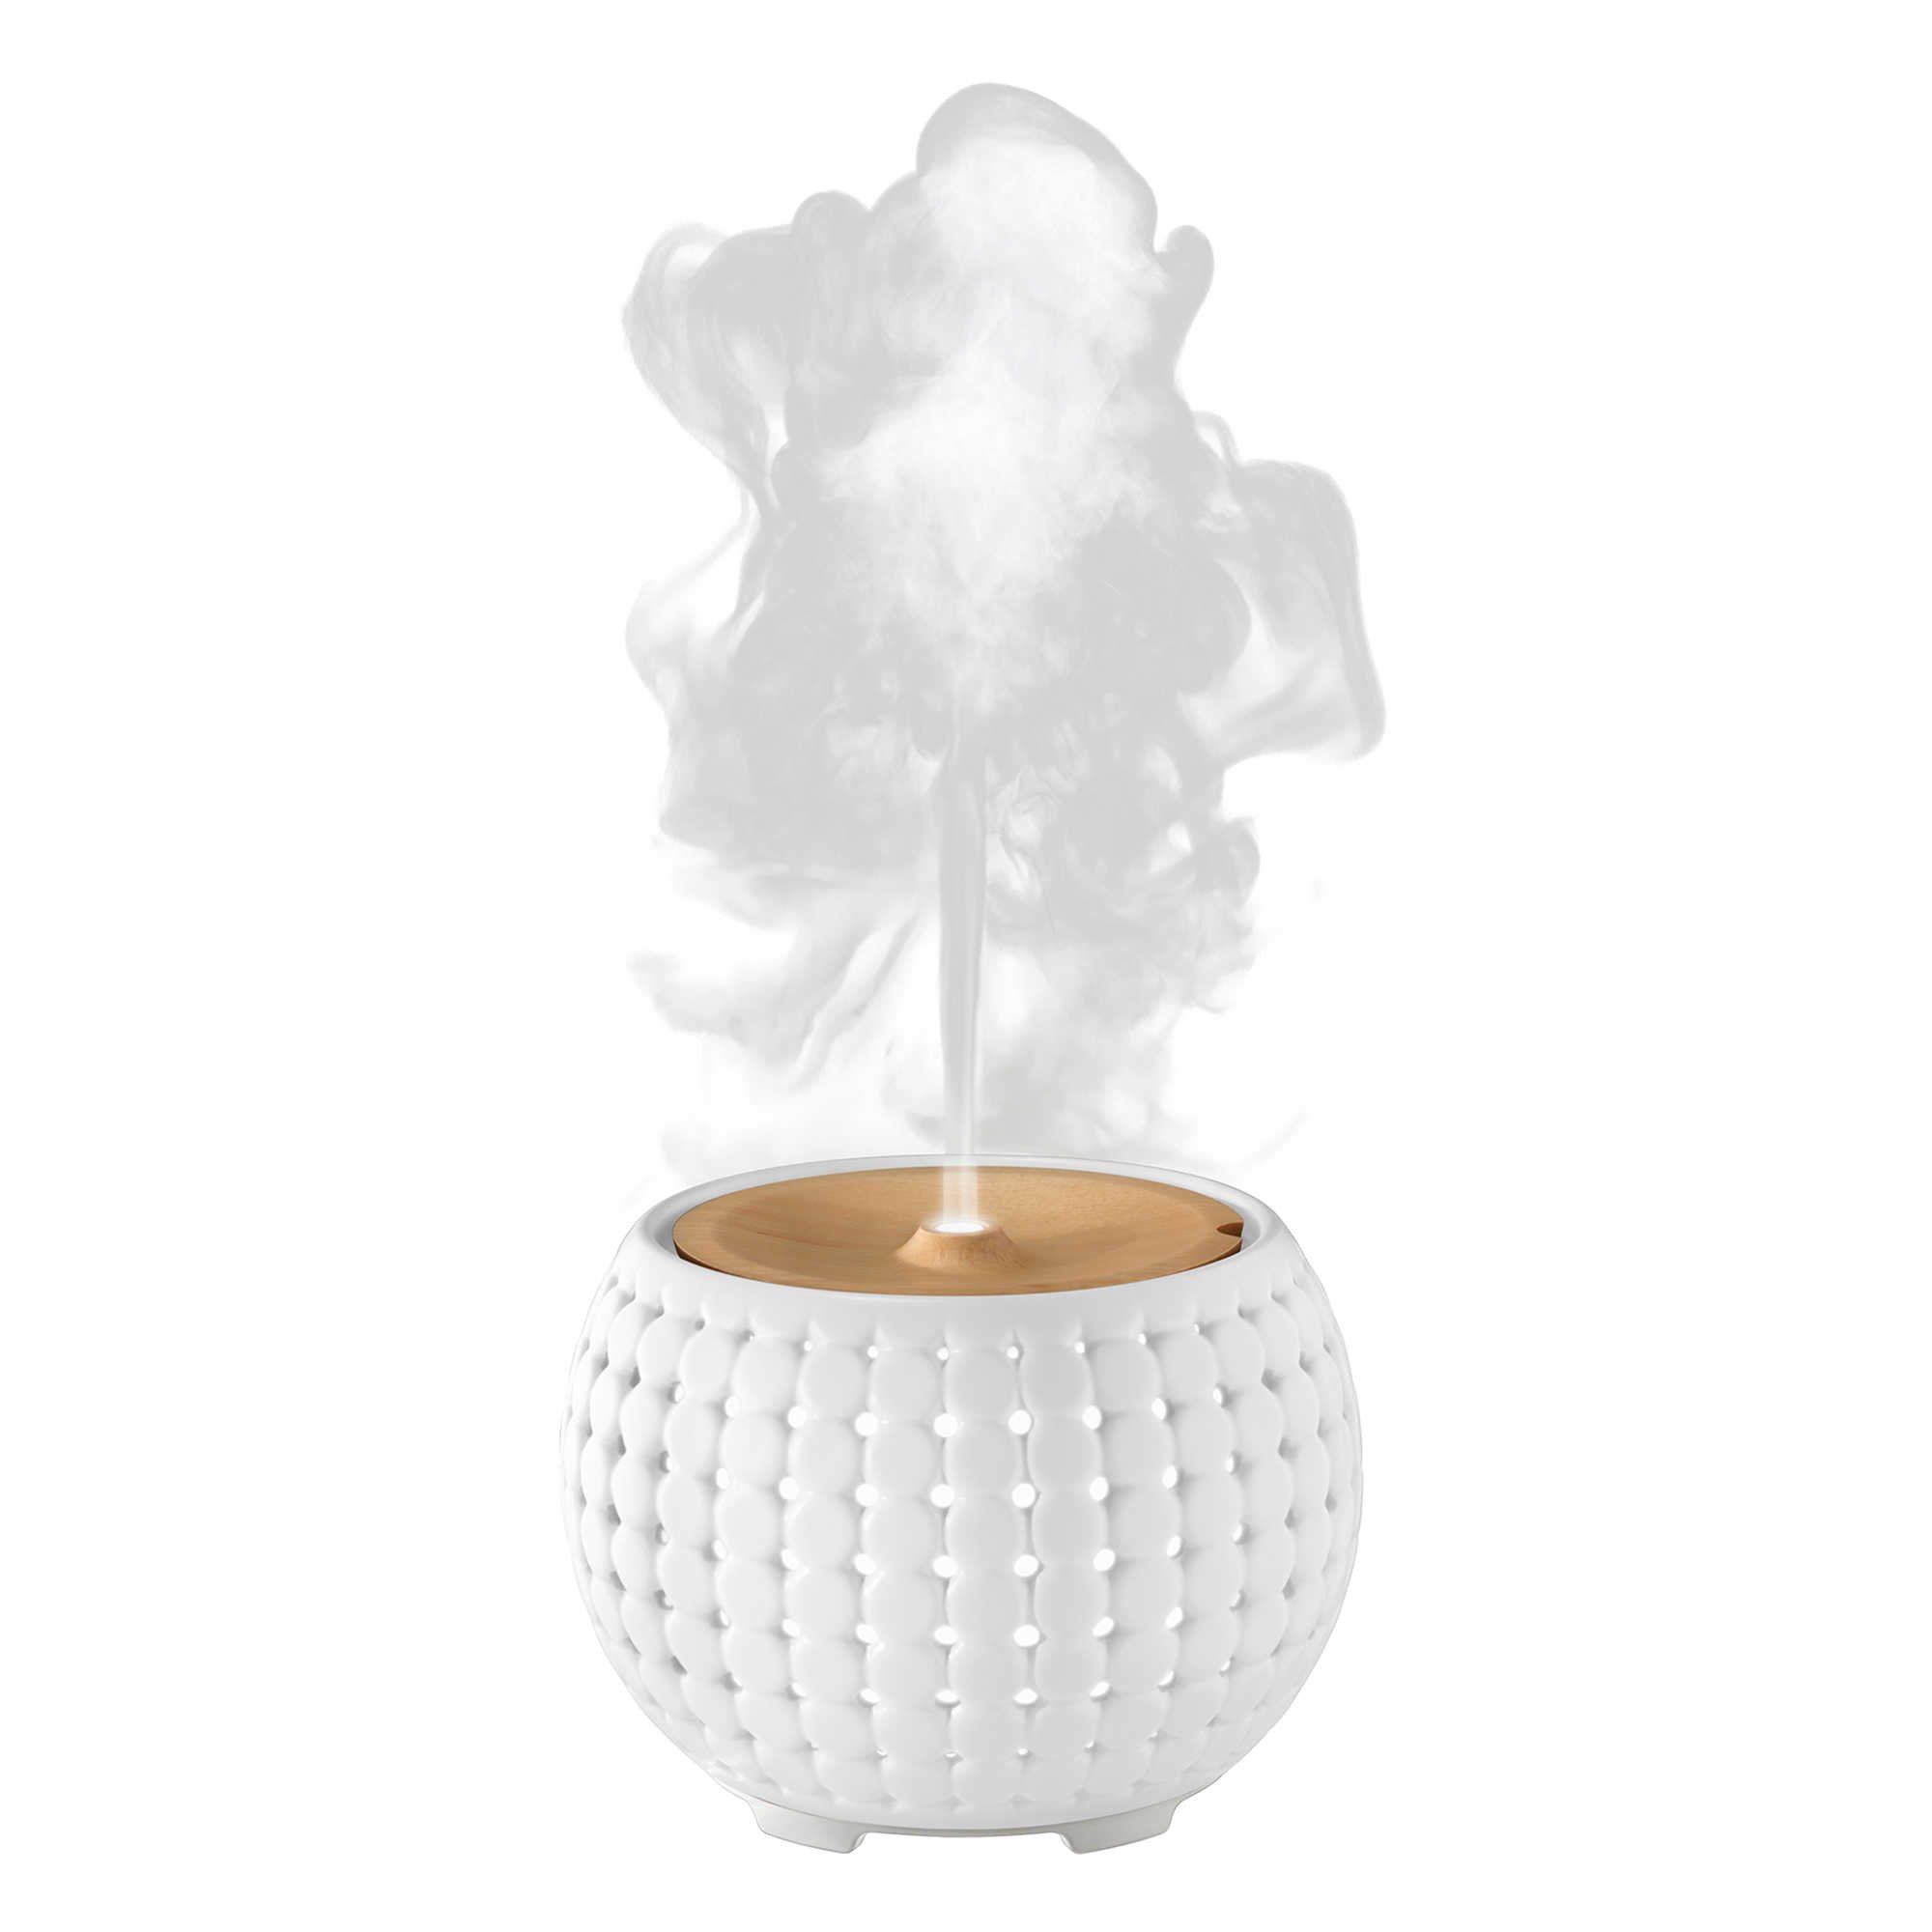 Ellia Gather Ultrasonic Natural Aroma Diffuser with Remote and Sample of Essential Oils